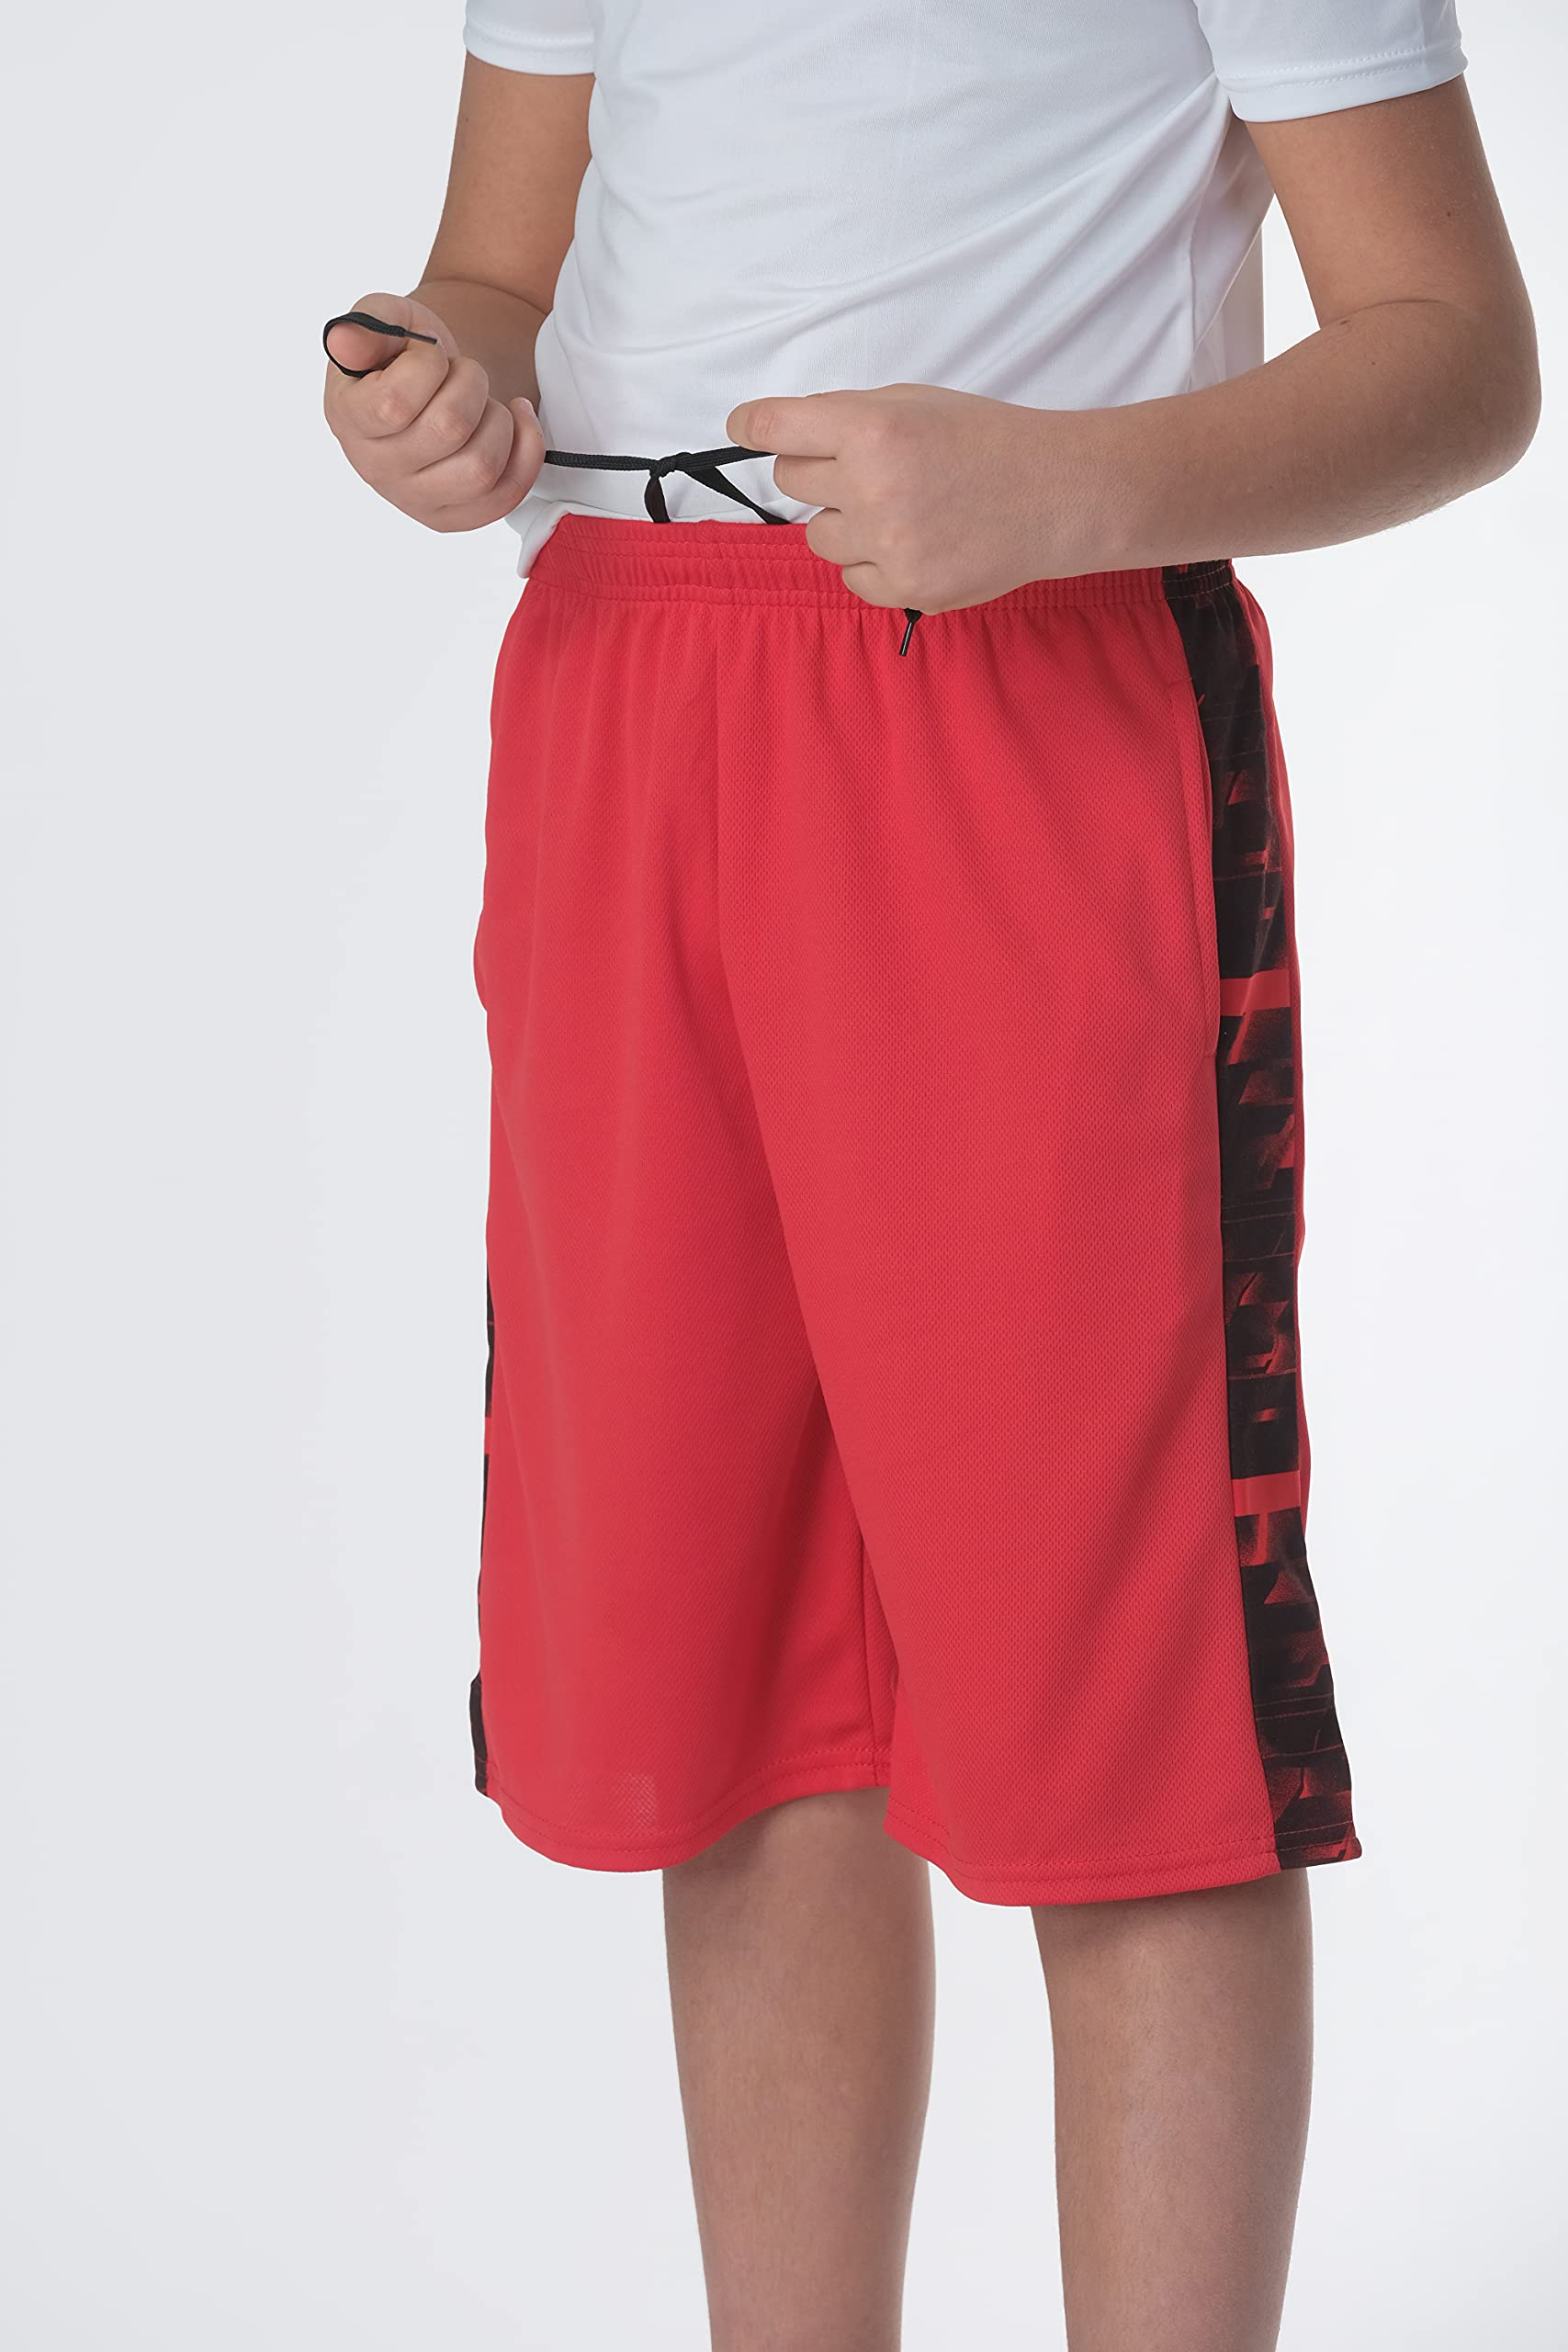 Boys' 5-Pack Mesh Active Athletic Performance Basketball Shorts with Pockets